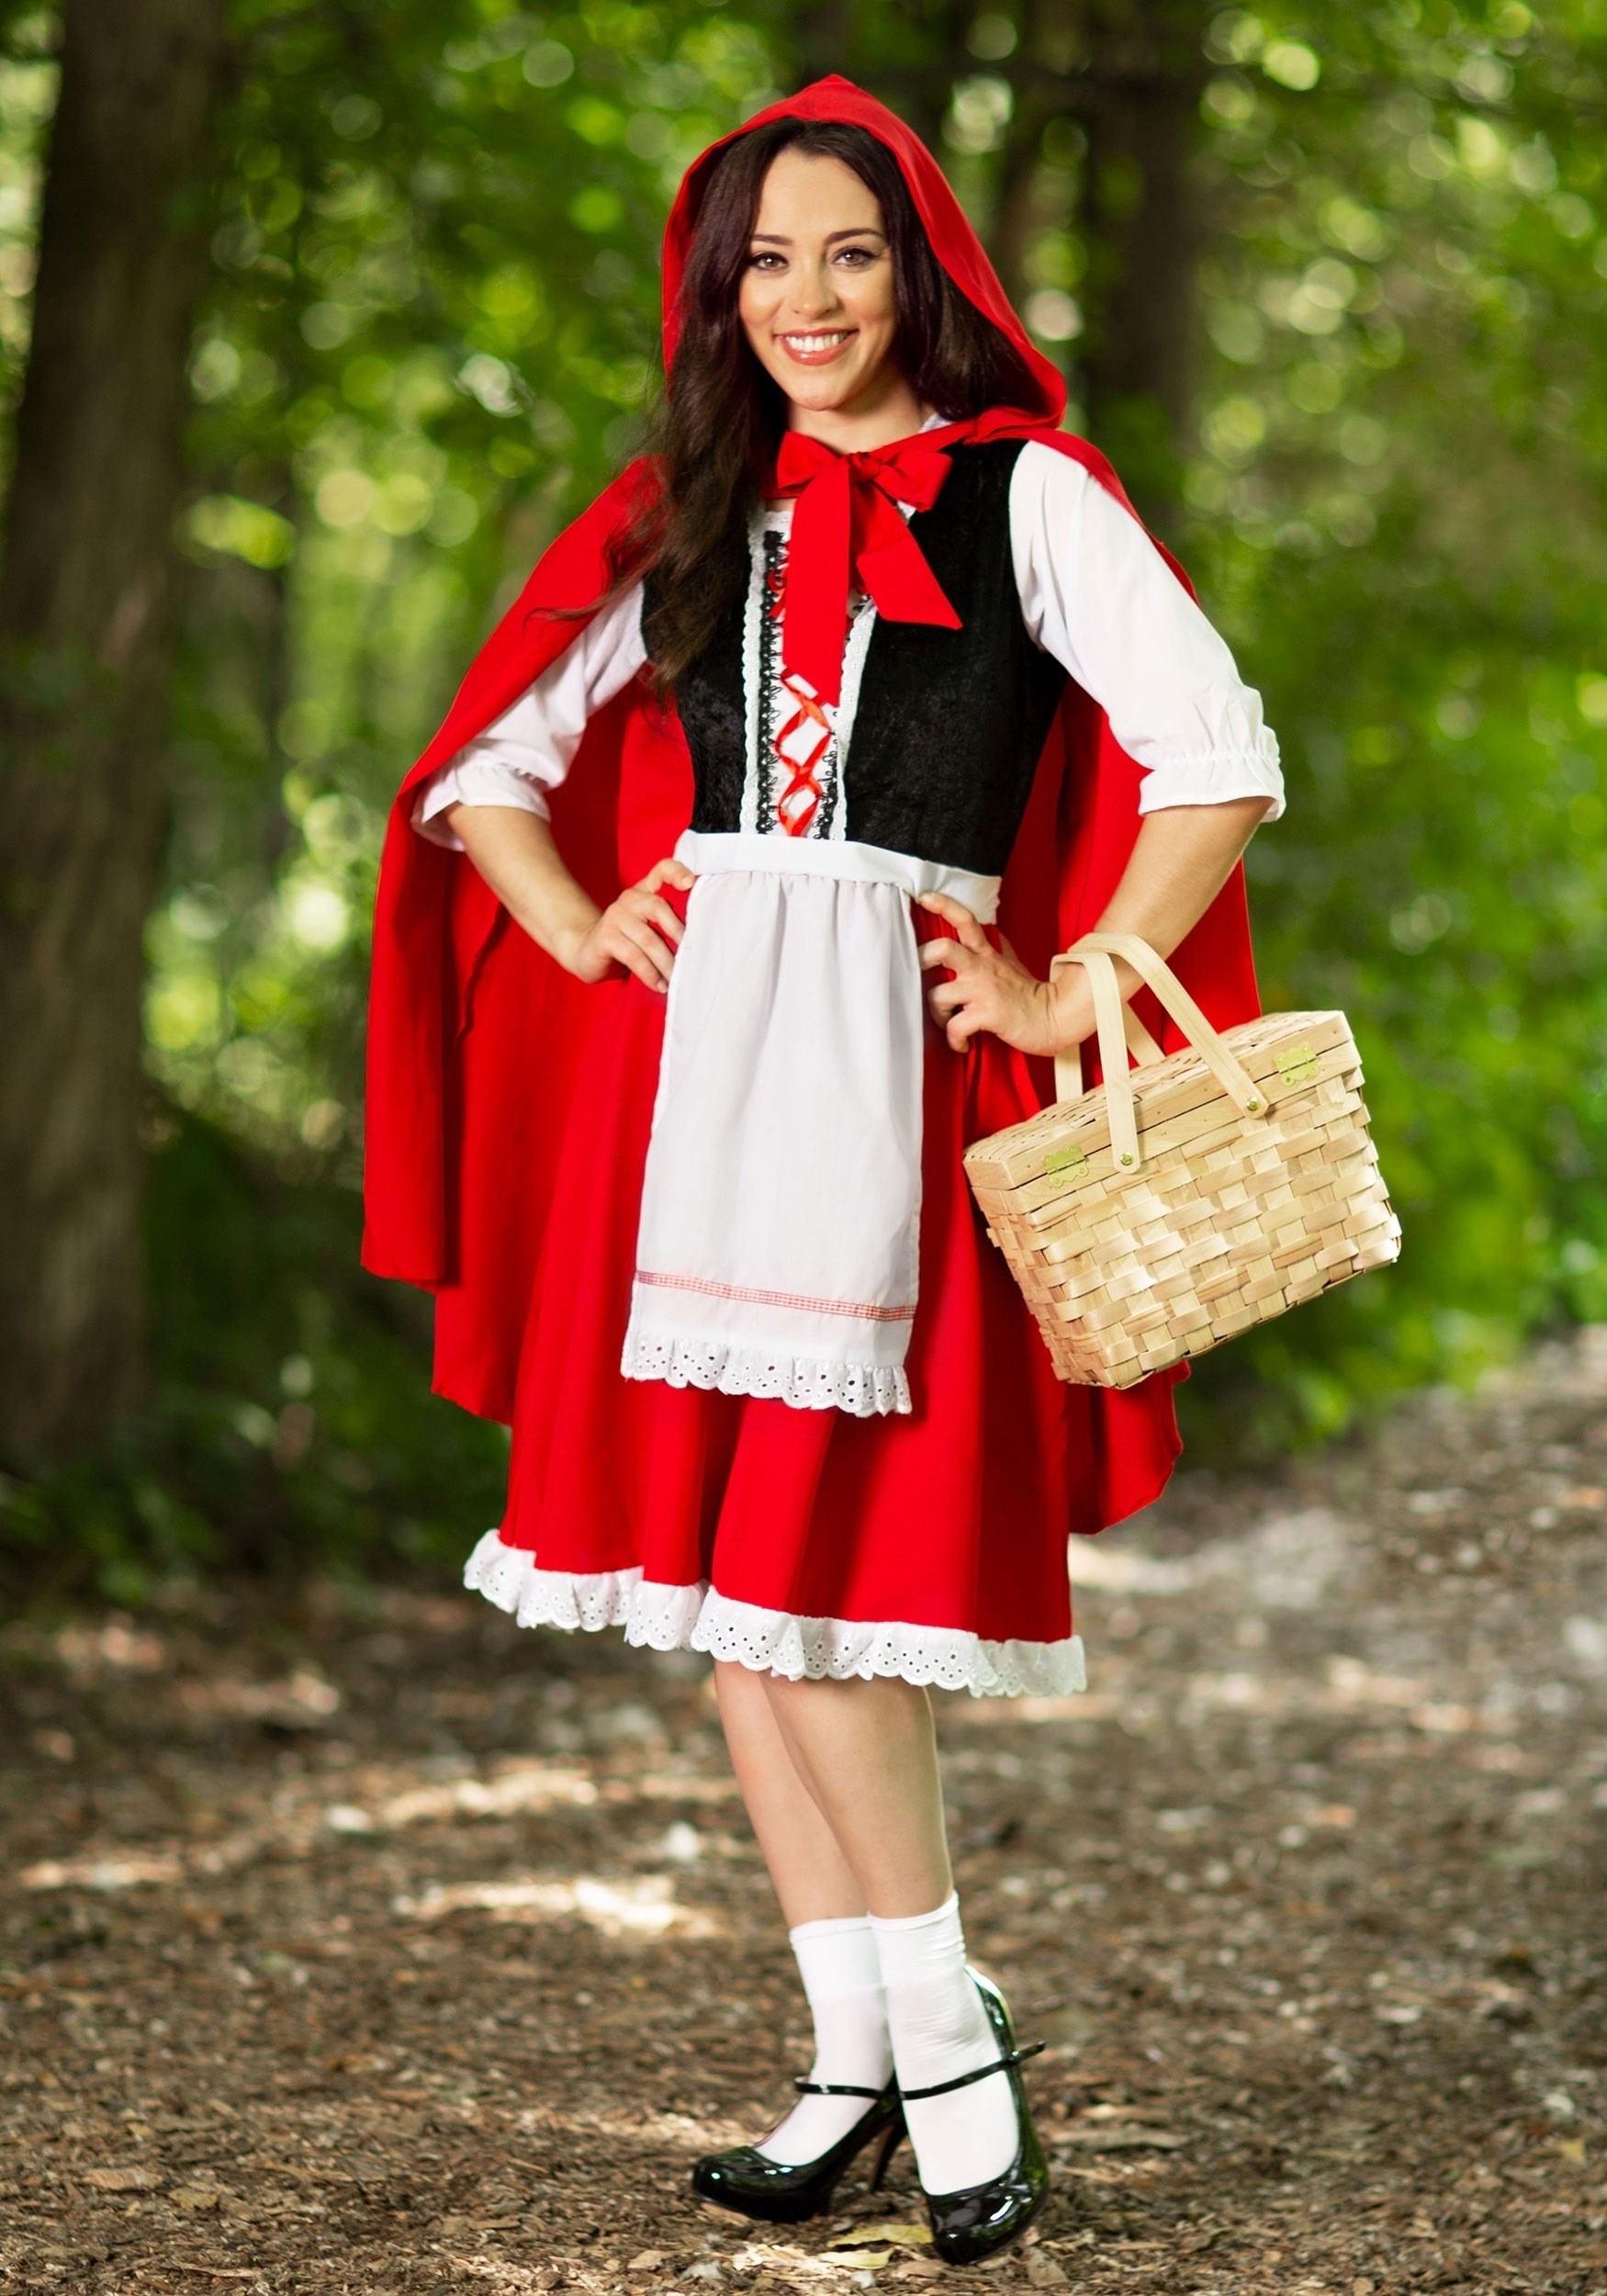 red riding hood halloween